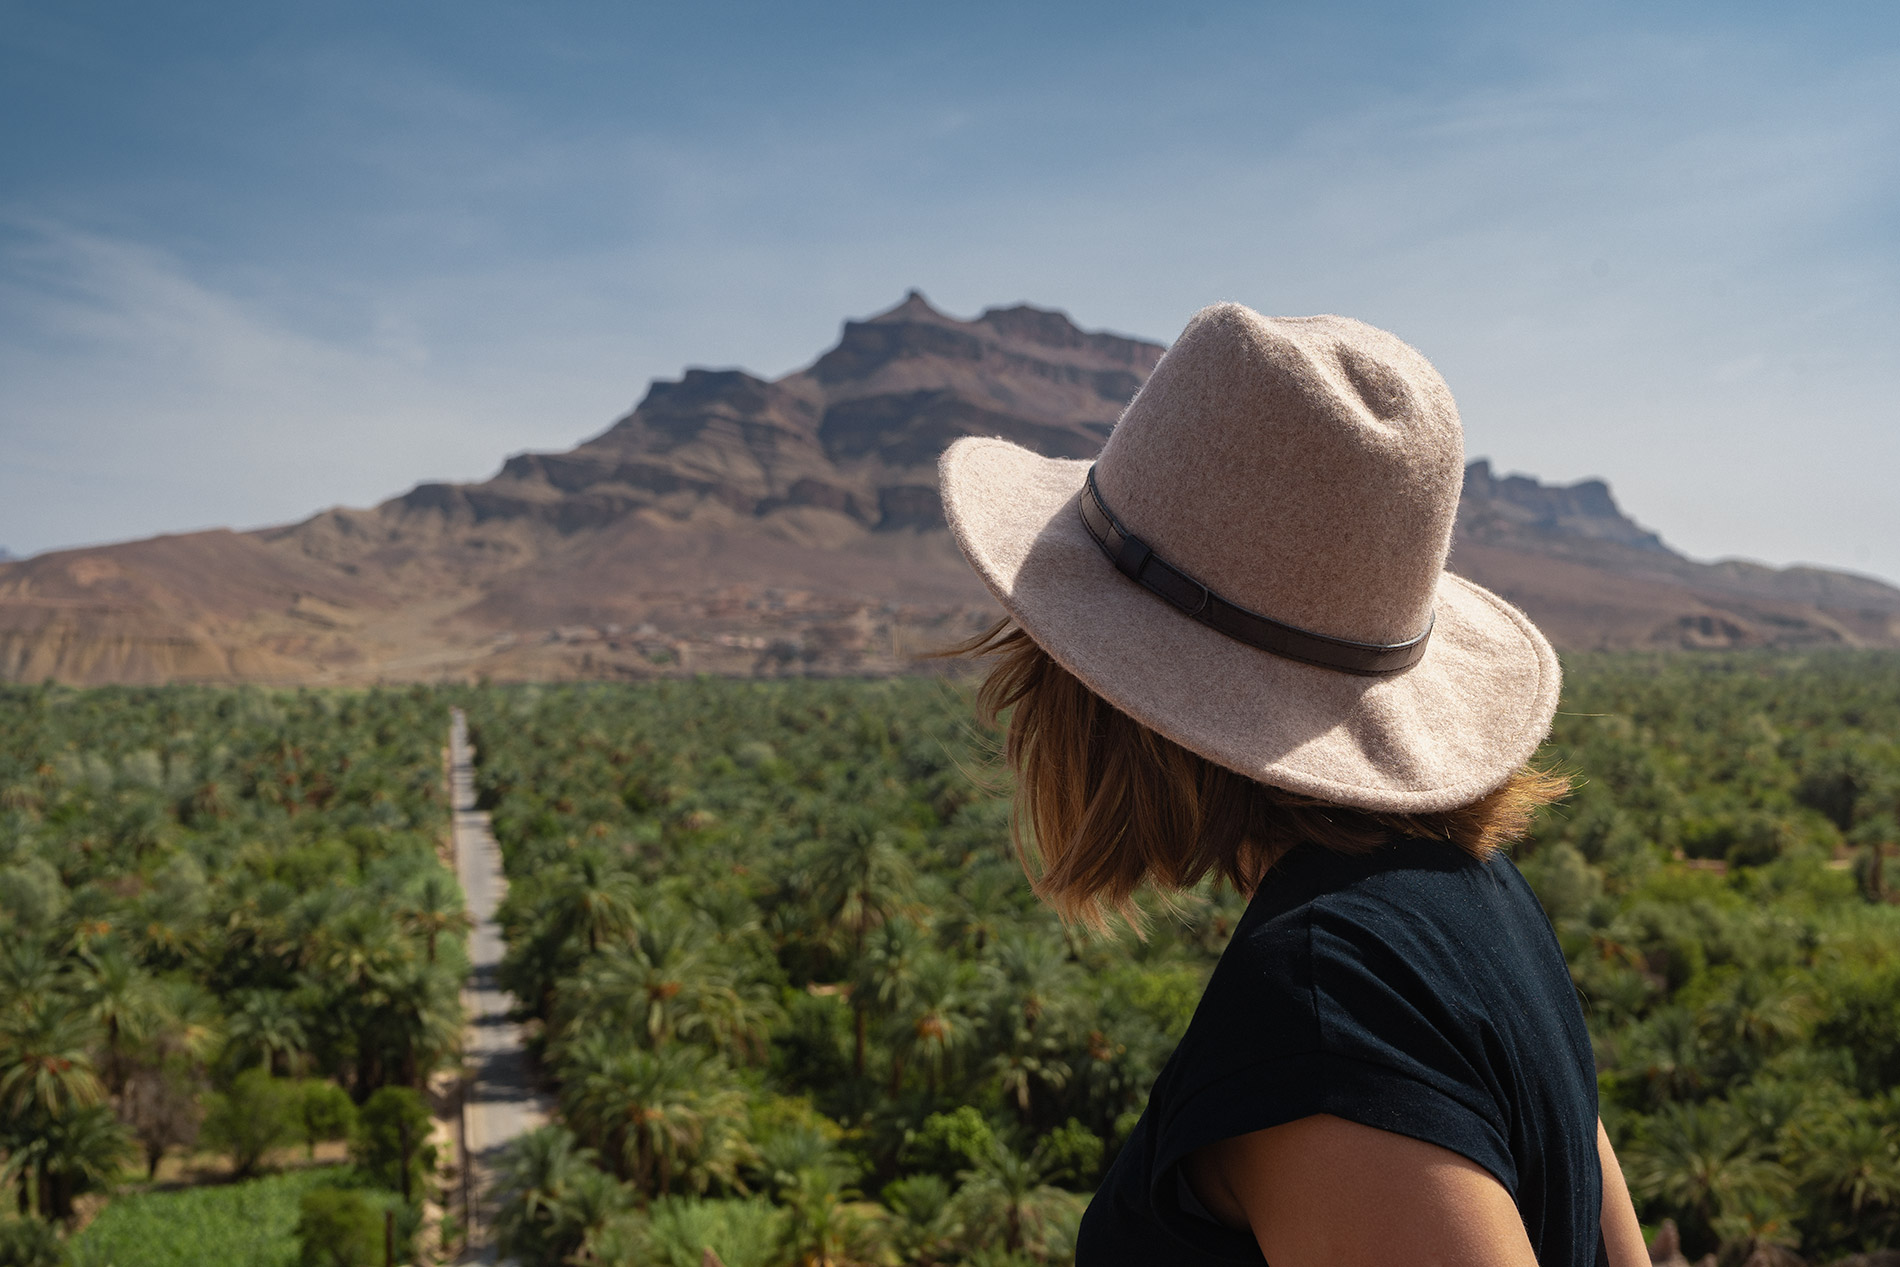 Maria taking in the stunning views of the Draa Valley during our desert trip in Morocco